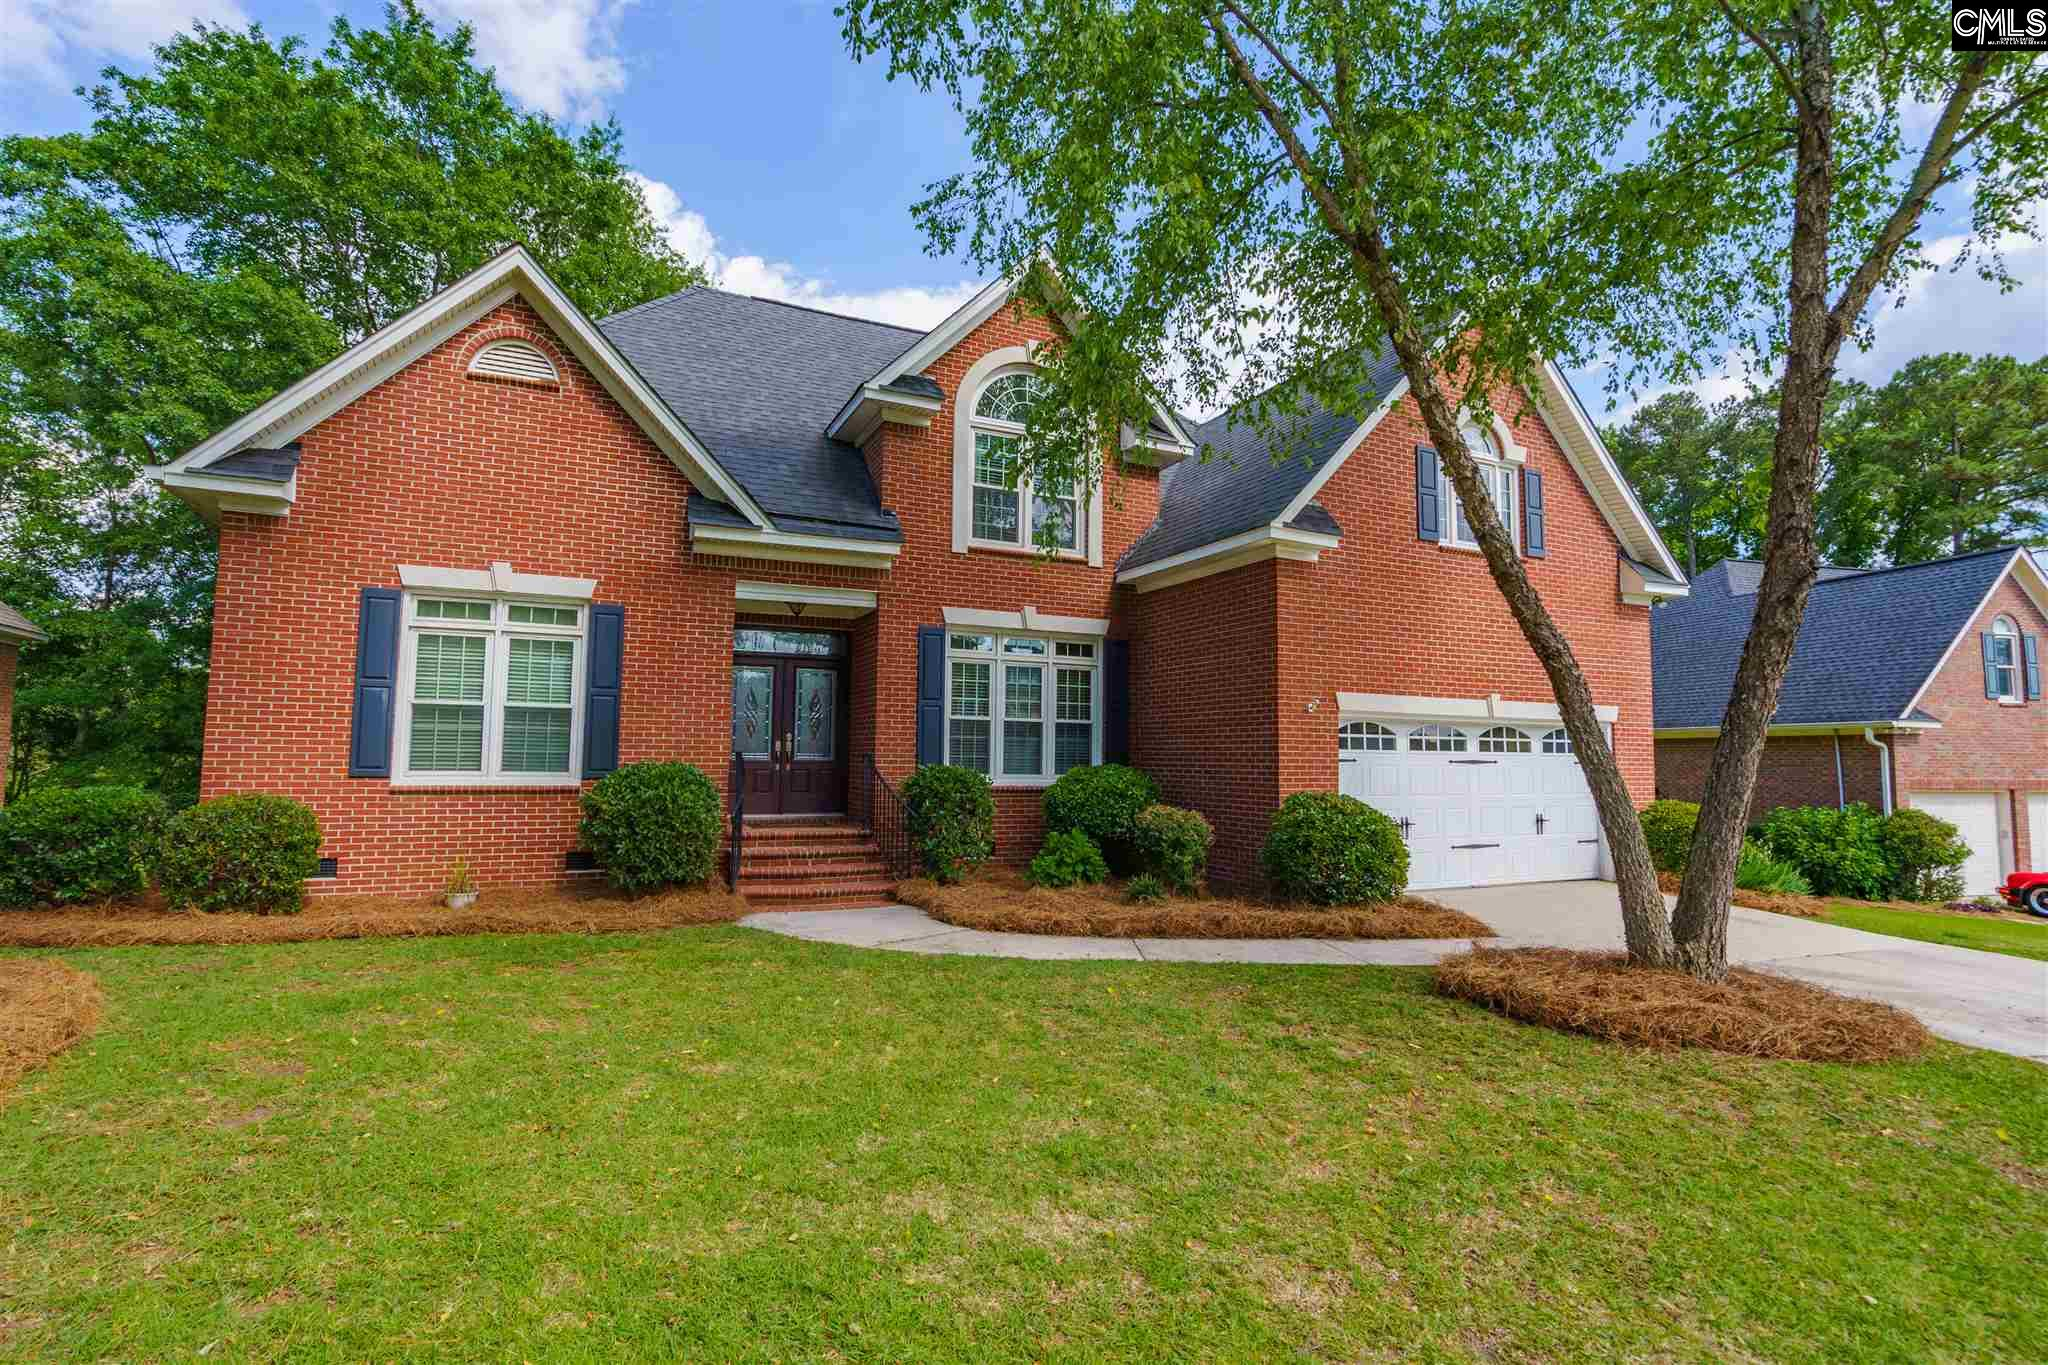 639 Bay Harbor Columbia, SC 29212